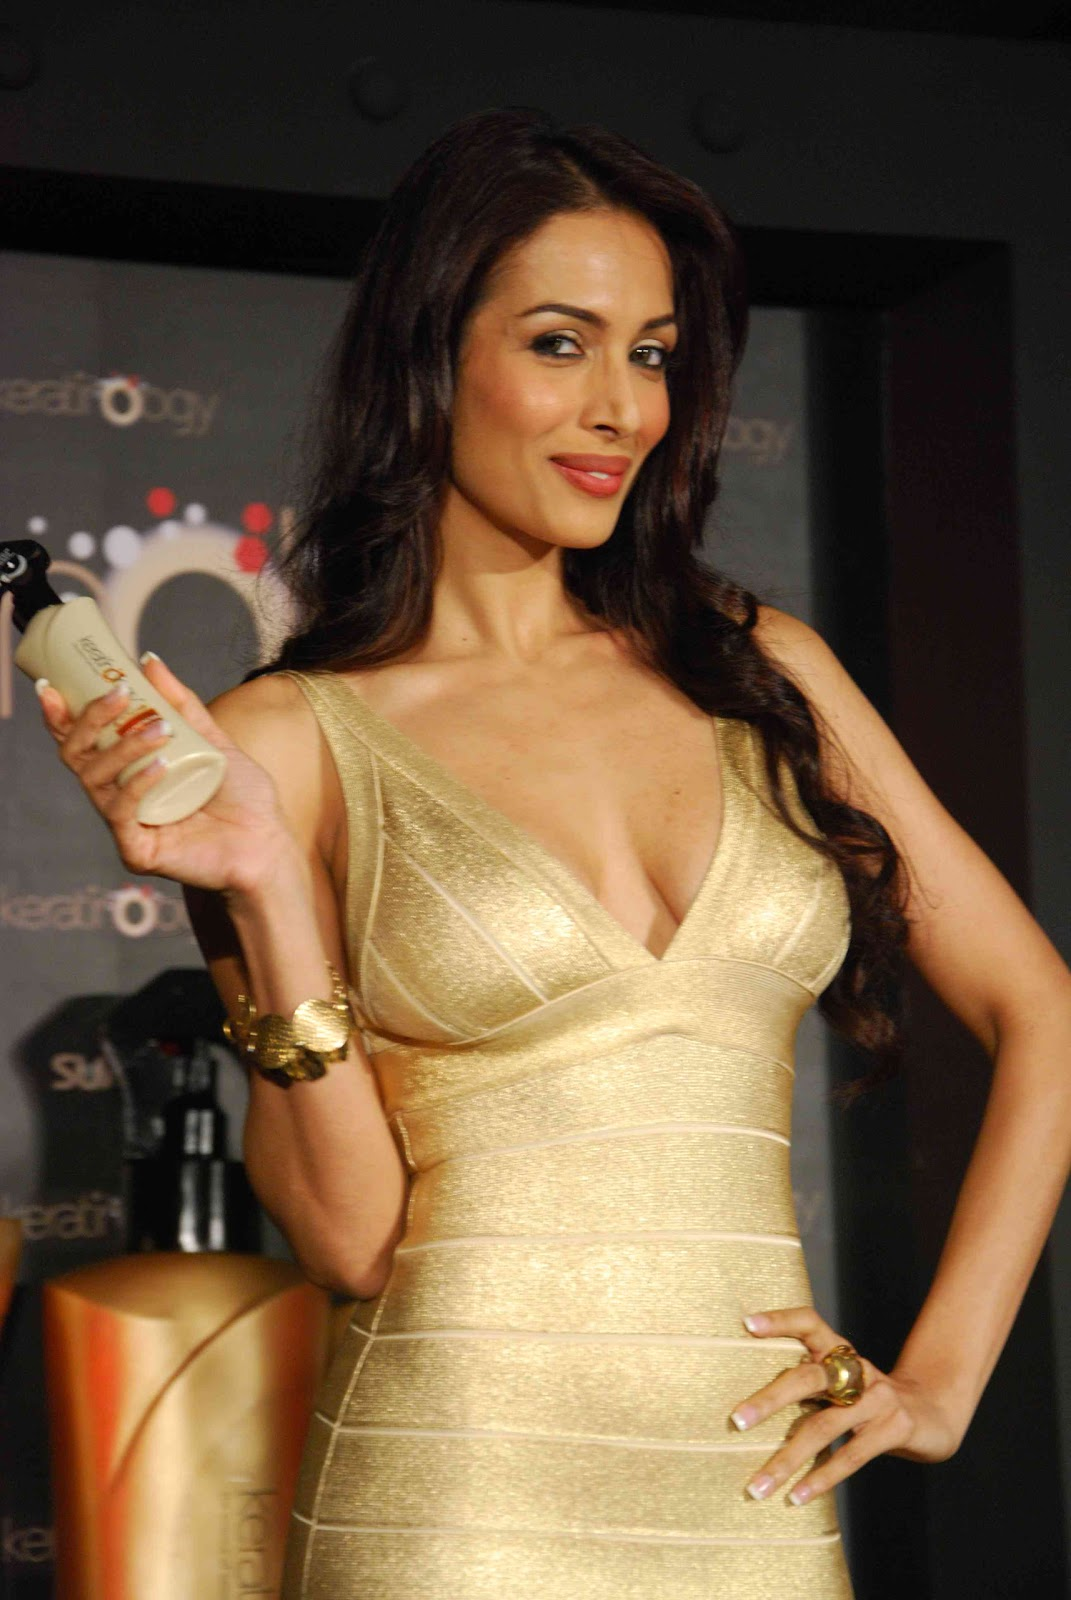 Malaika Arora in Golden Dress 1 - Malaika Arora in Golden Dress at Sunsilk event